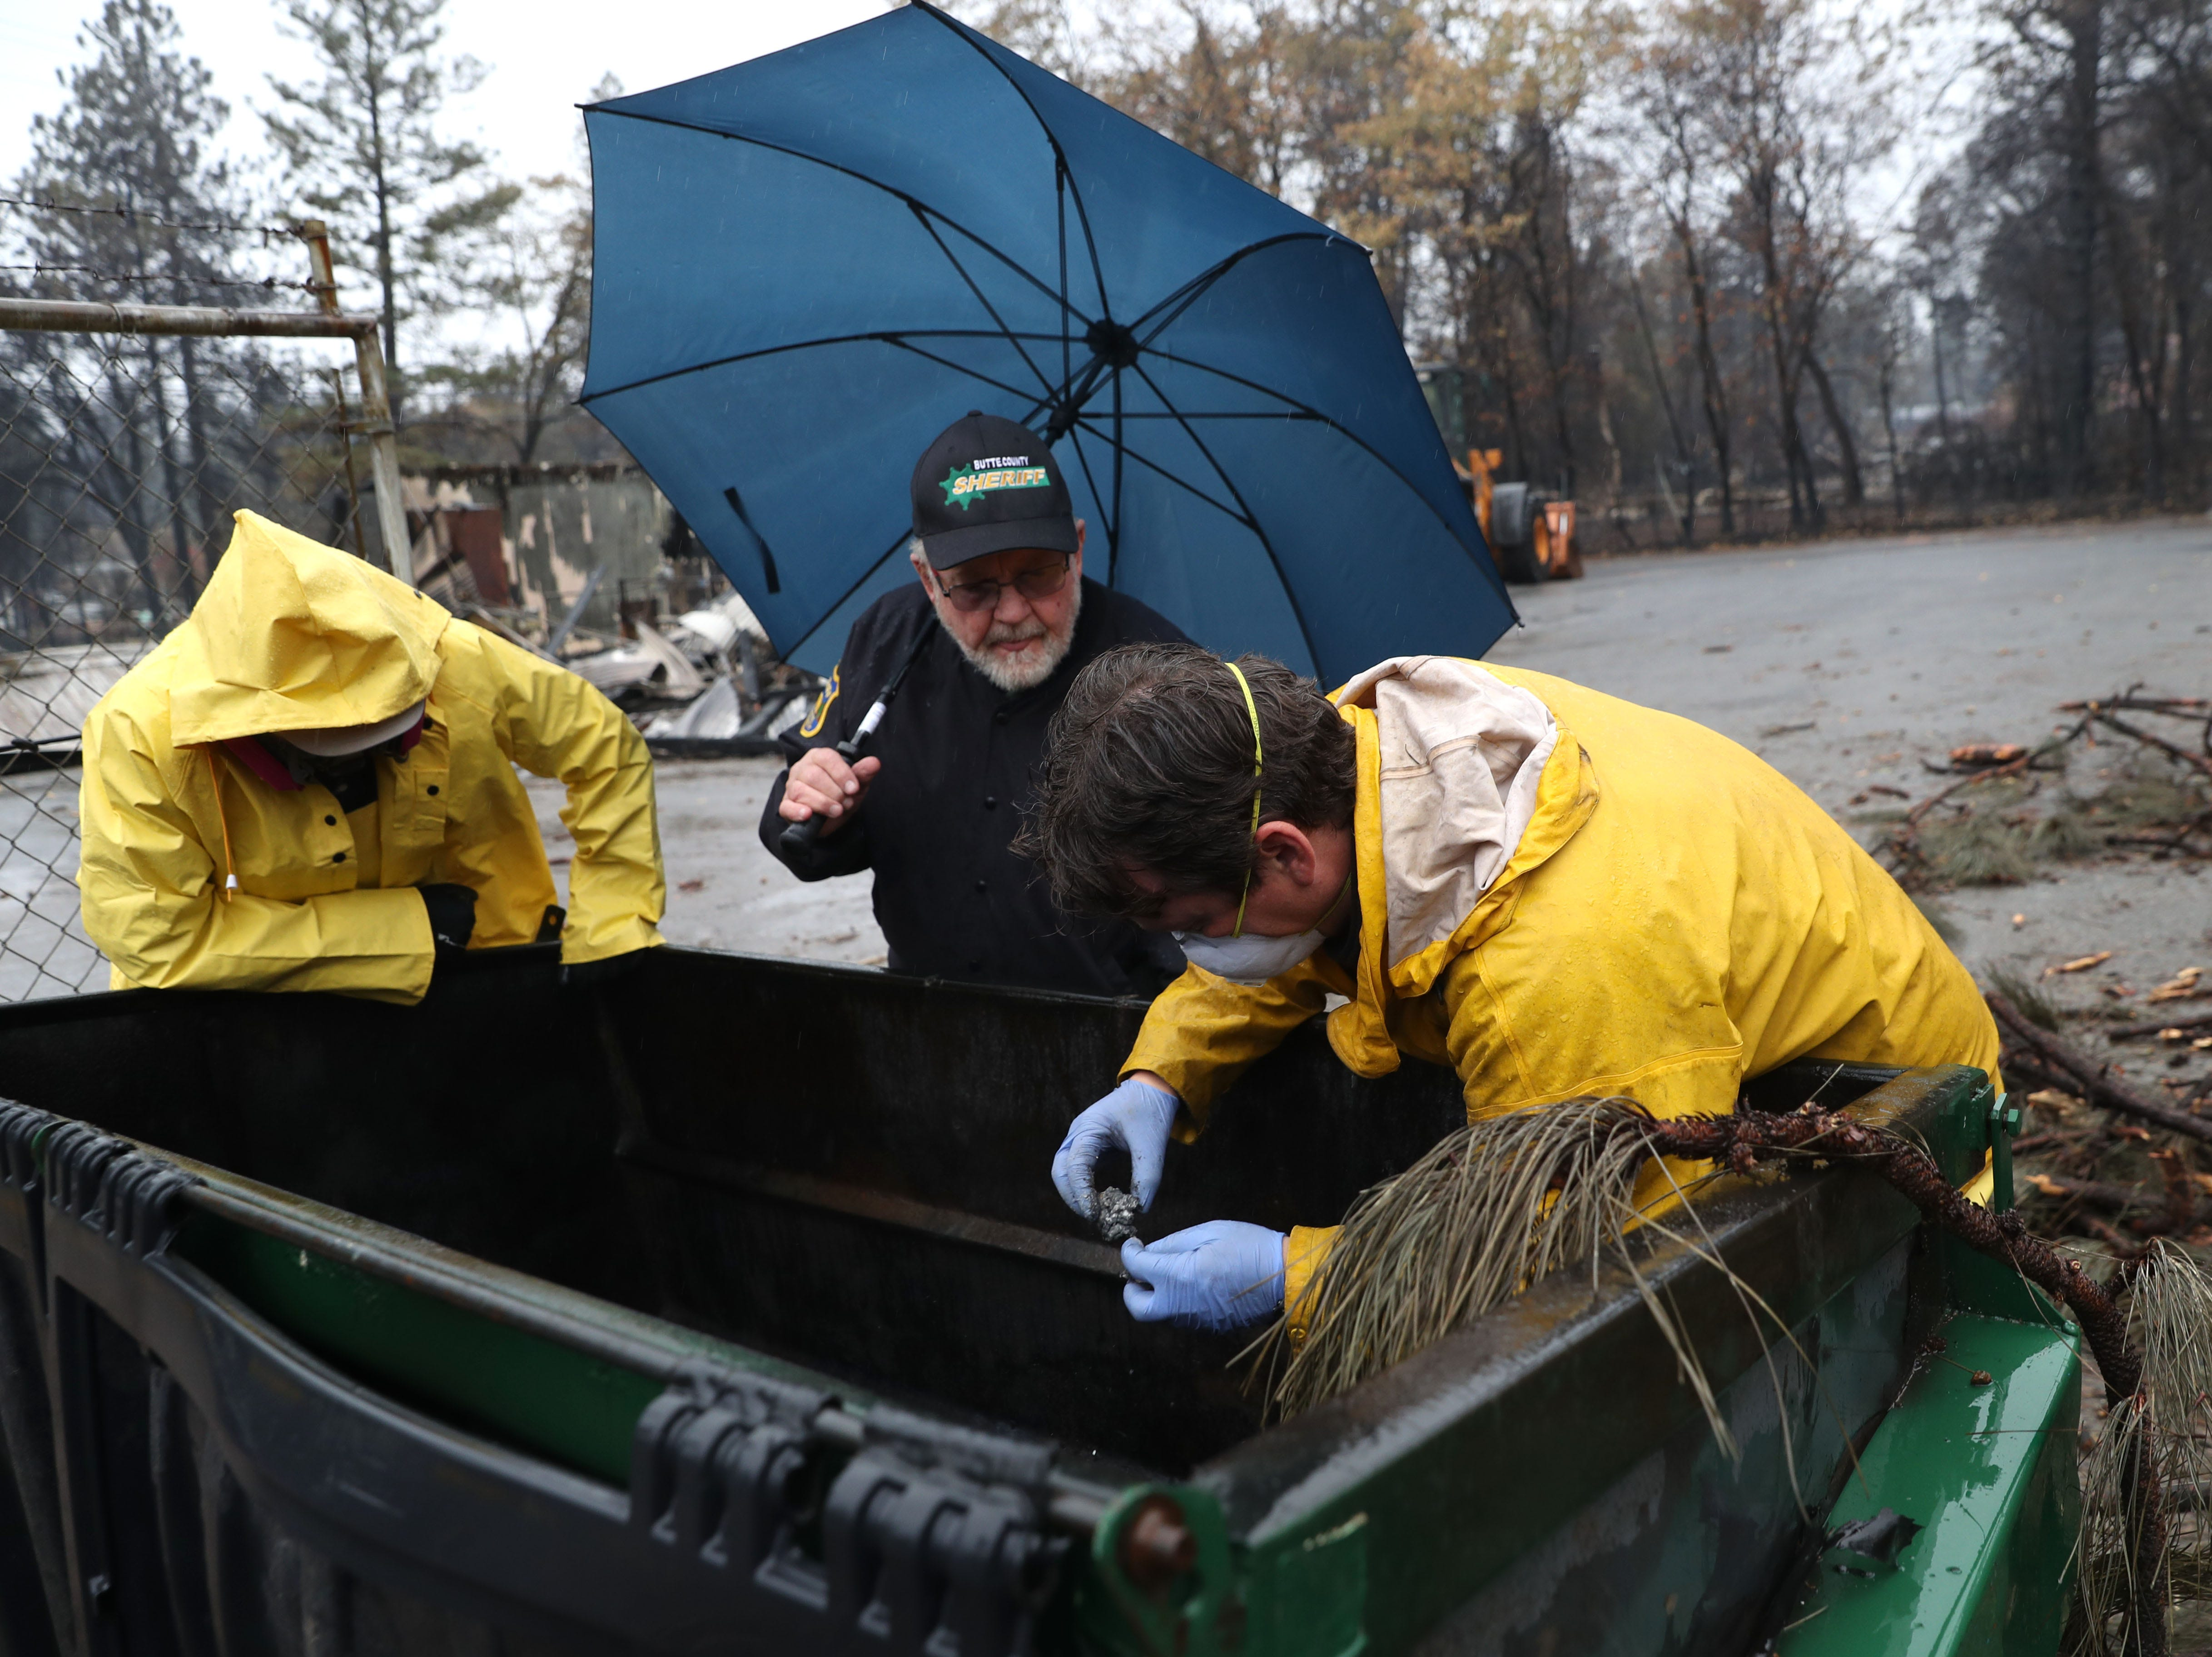 Search and rescue crews dig through dumpster as they search for human remains on November 21, 2018 in Paradise, Calif.